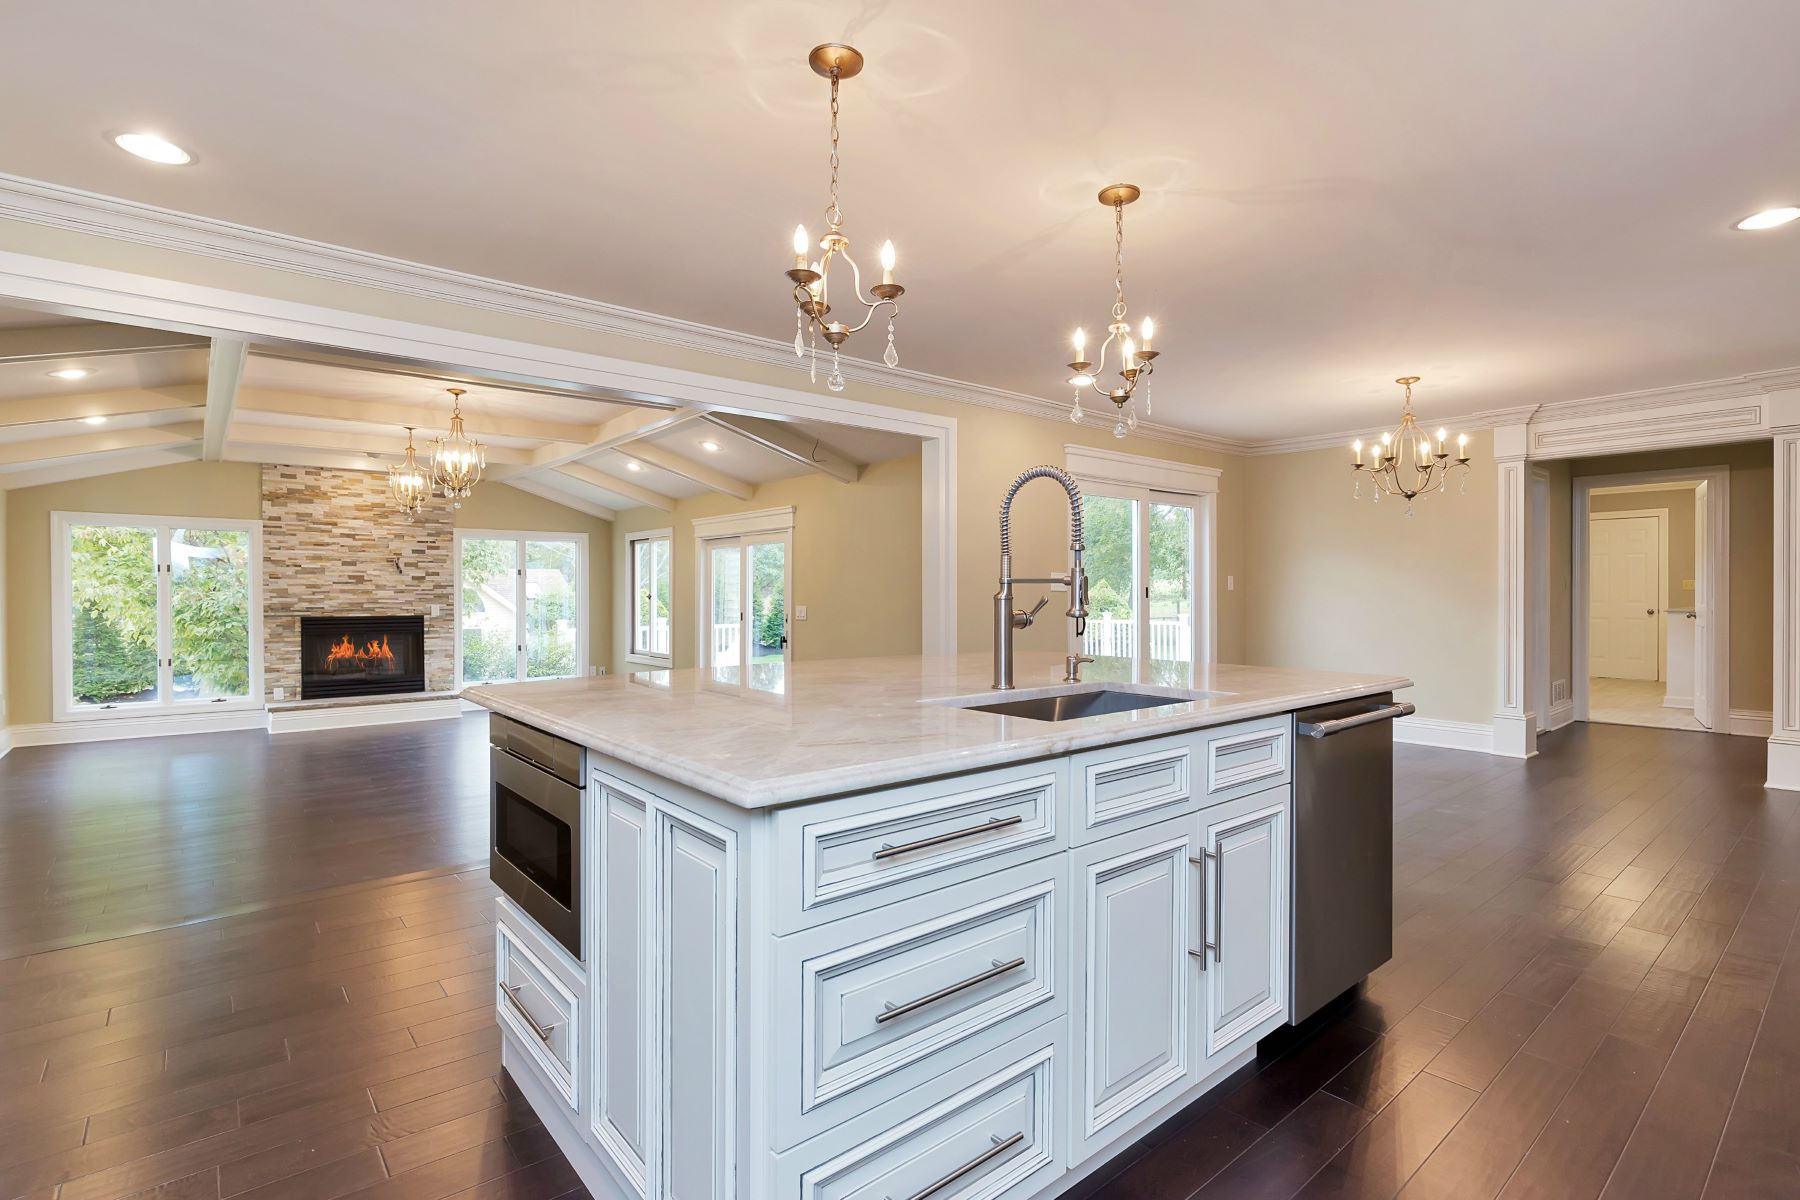 Single Family Home for Sale at Elegant Custom Colonial 12 Meadowview Drive Colts Neck, New Jersey 07722 United States